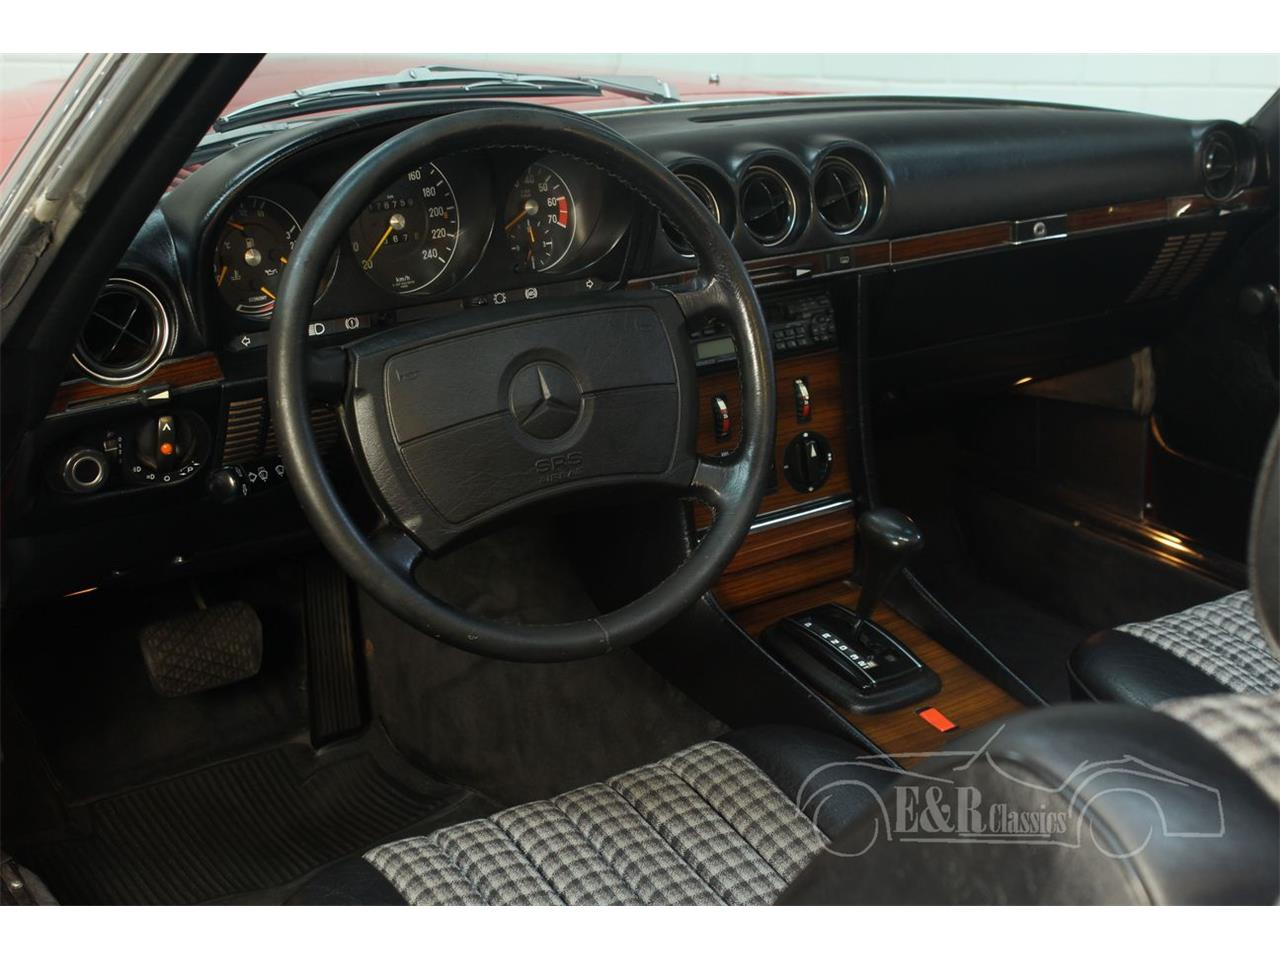 Large Picture of '85 Mercedes-Benz 380SL located in Noord-Brabant - $38,550.00 Offered by E & R Classics - R1DJ